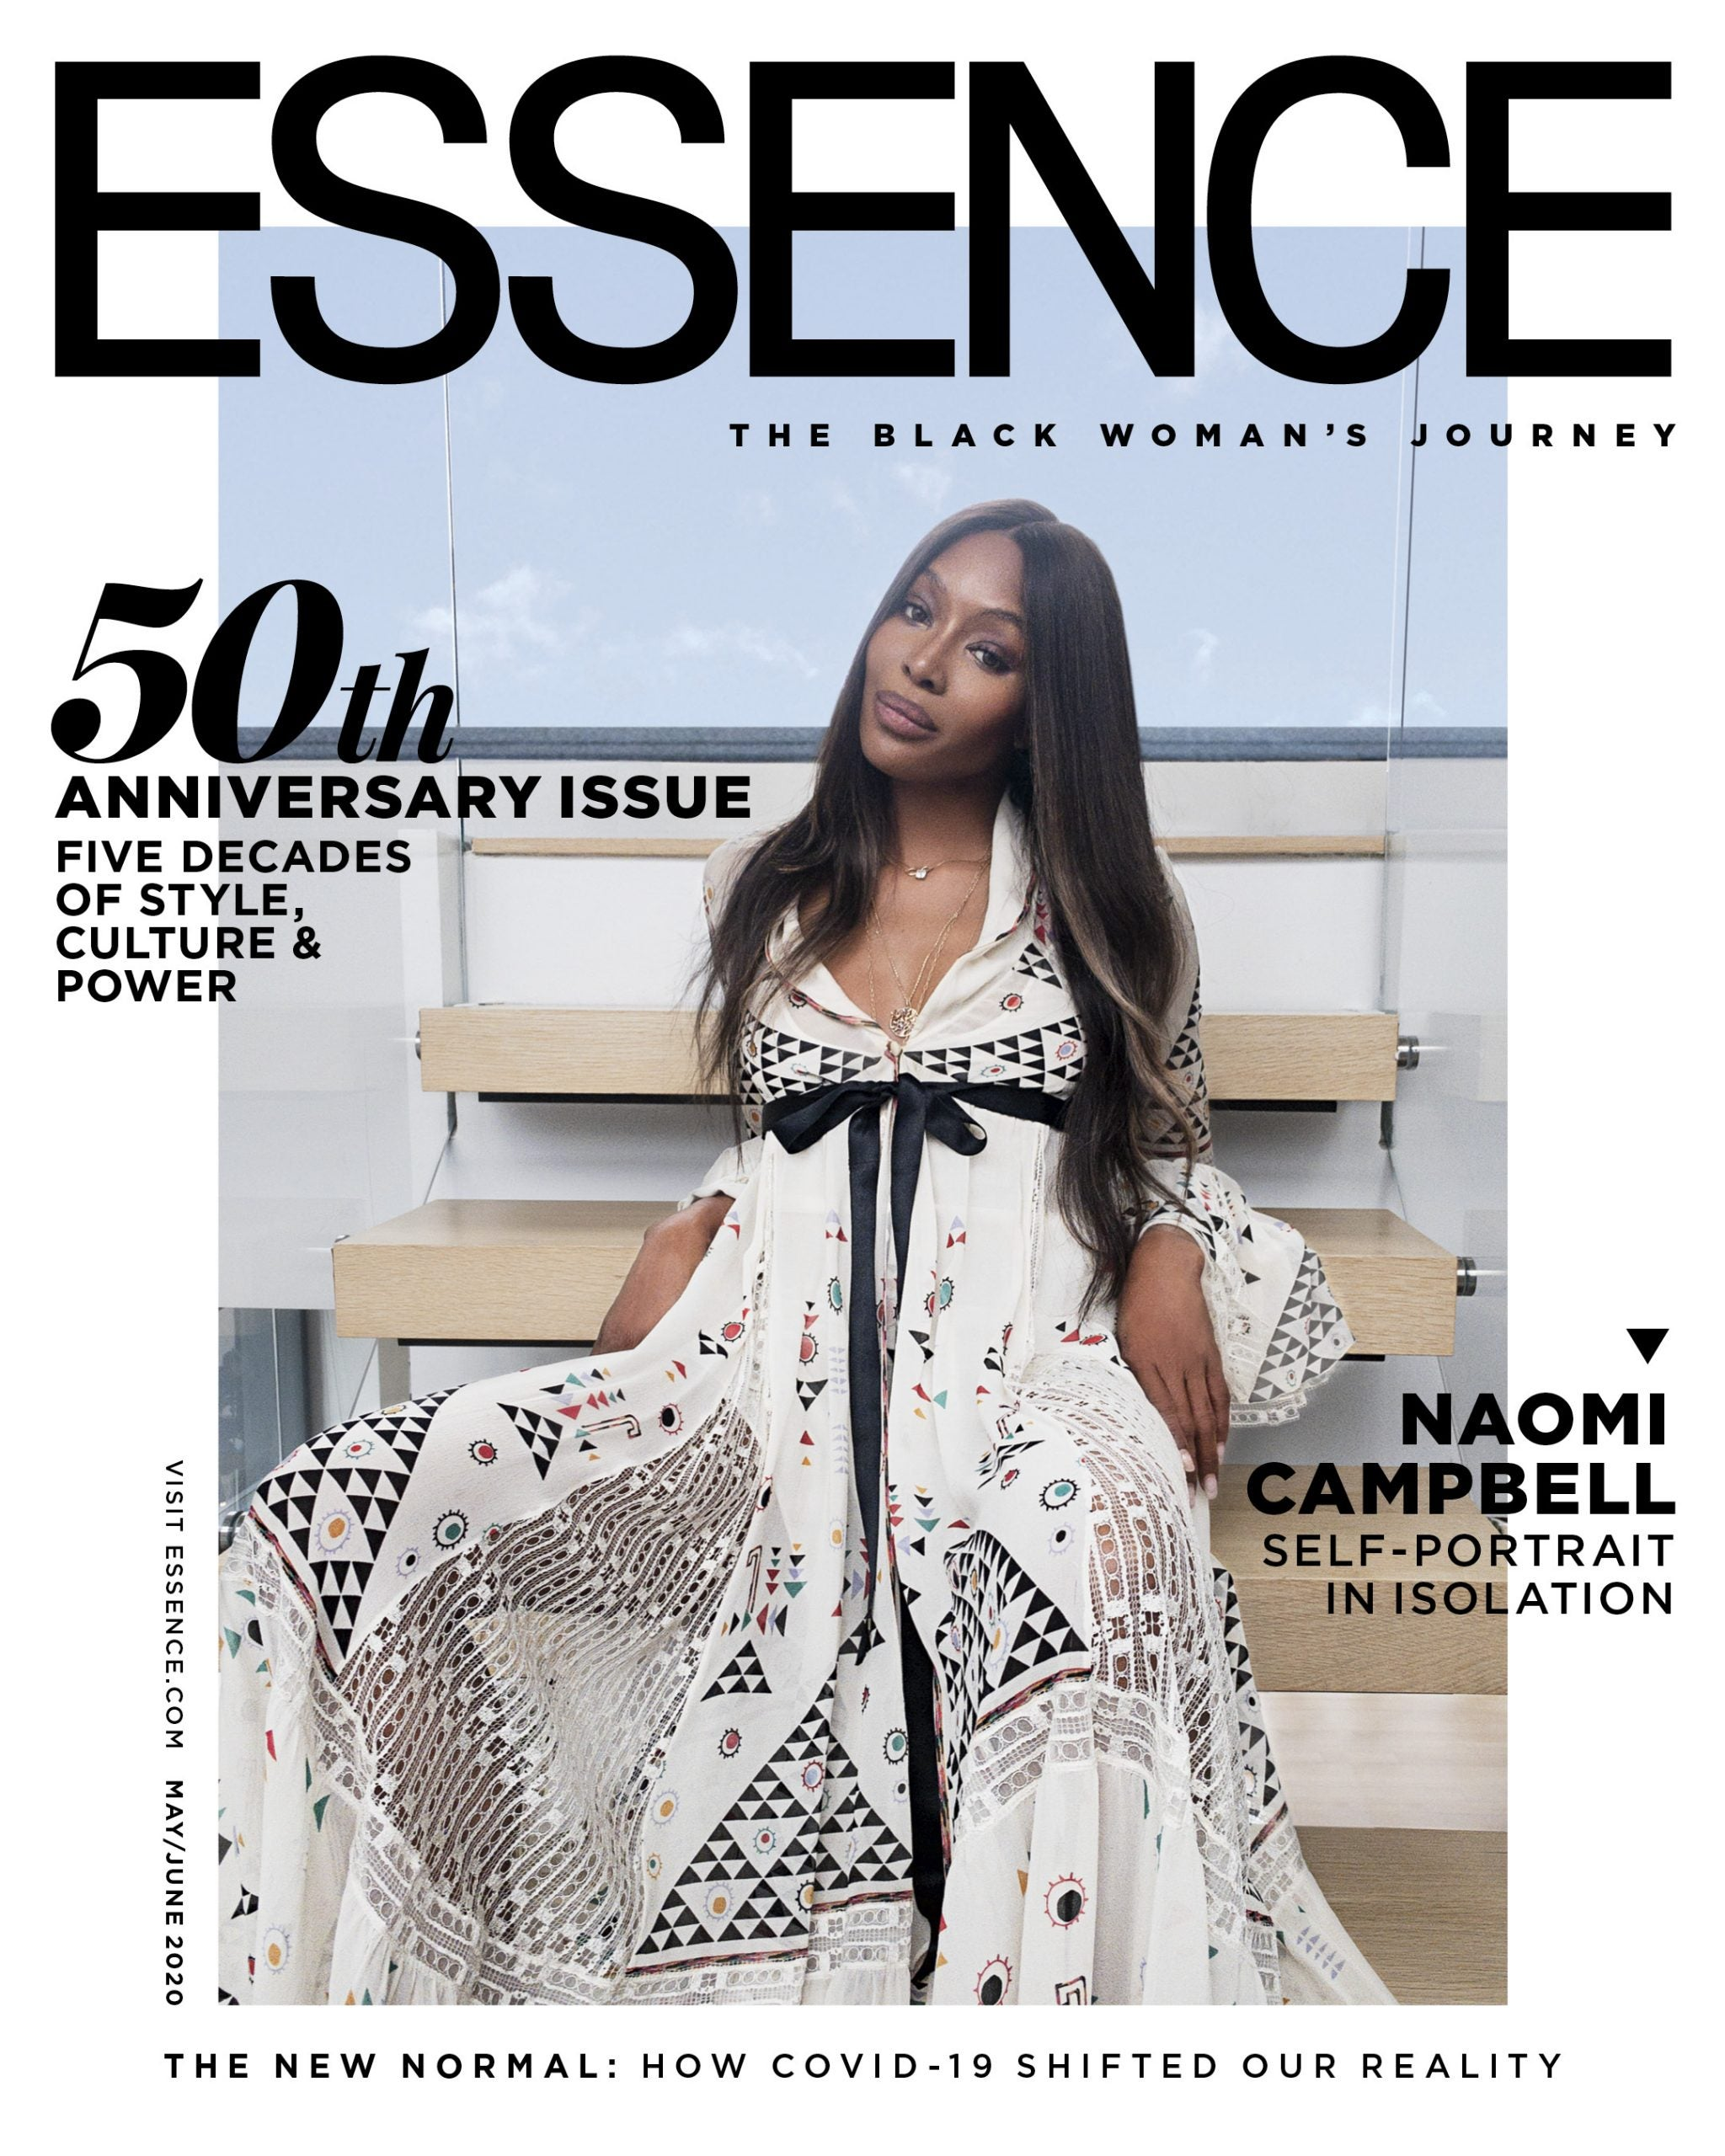 Naomi Campbell 50th Anniversary Cover